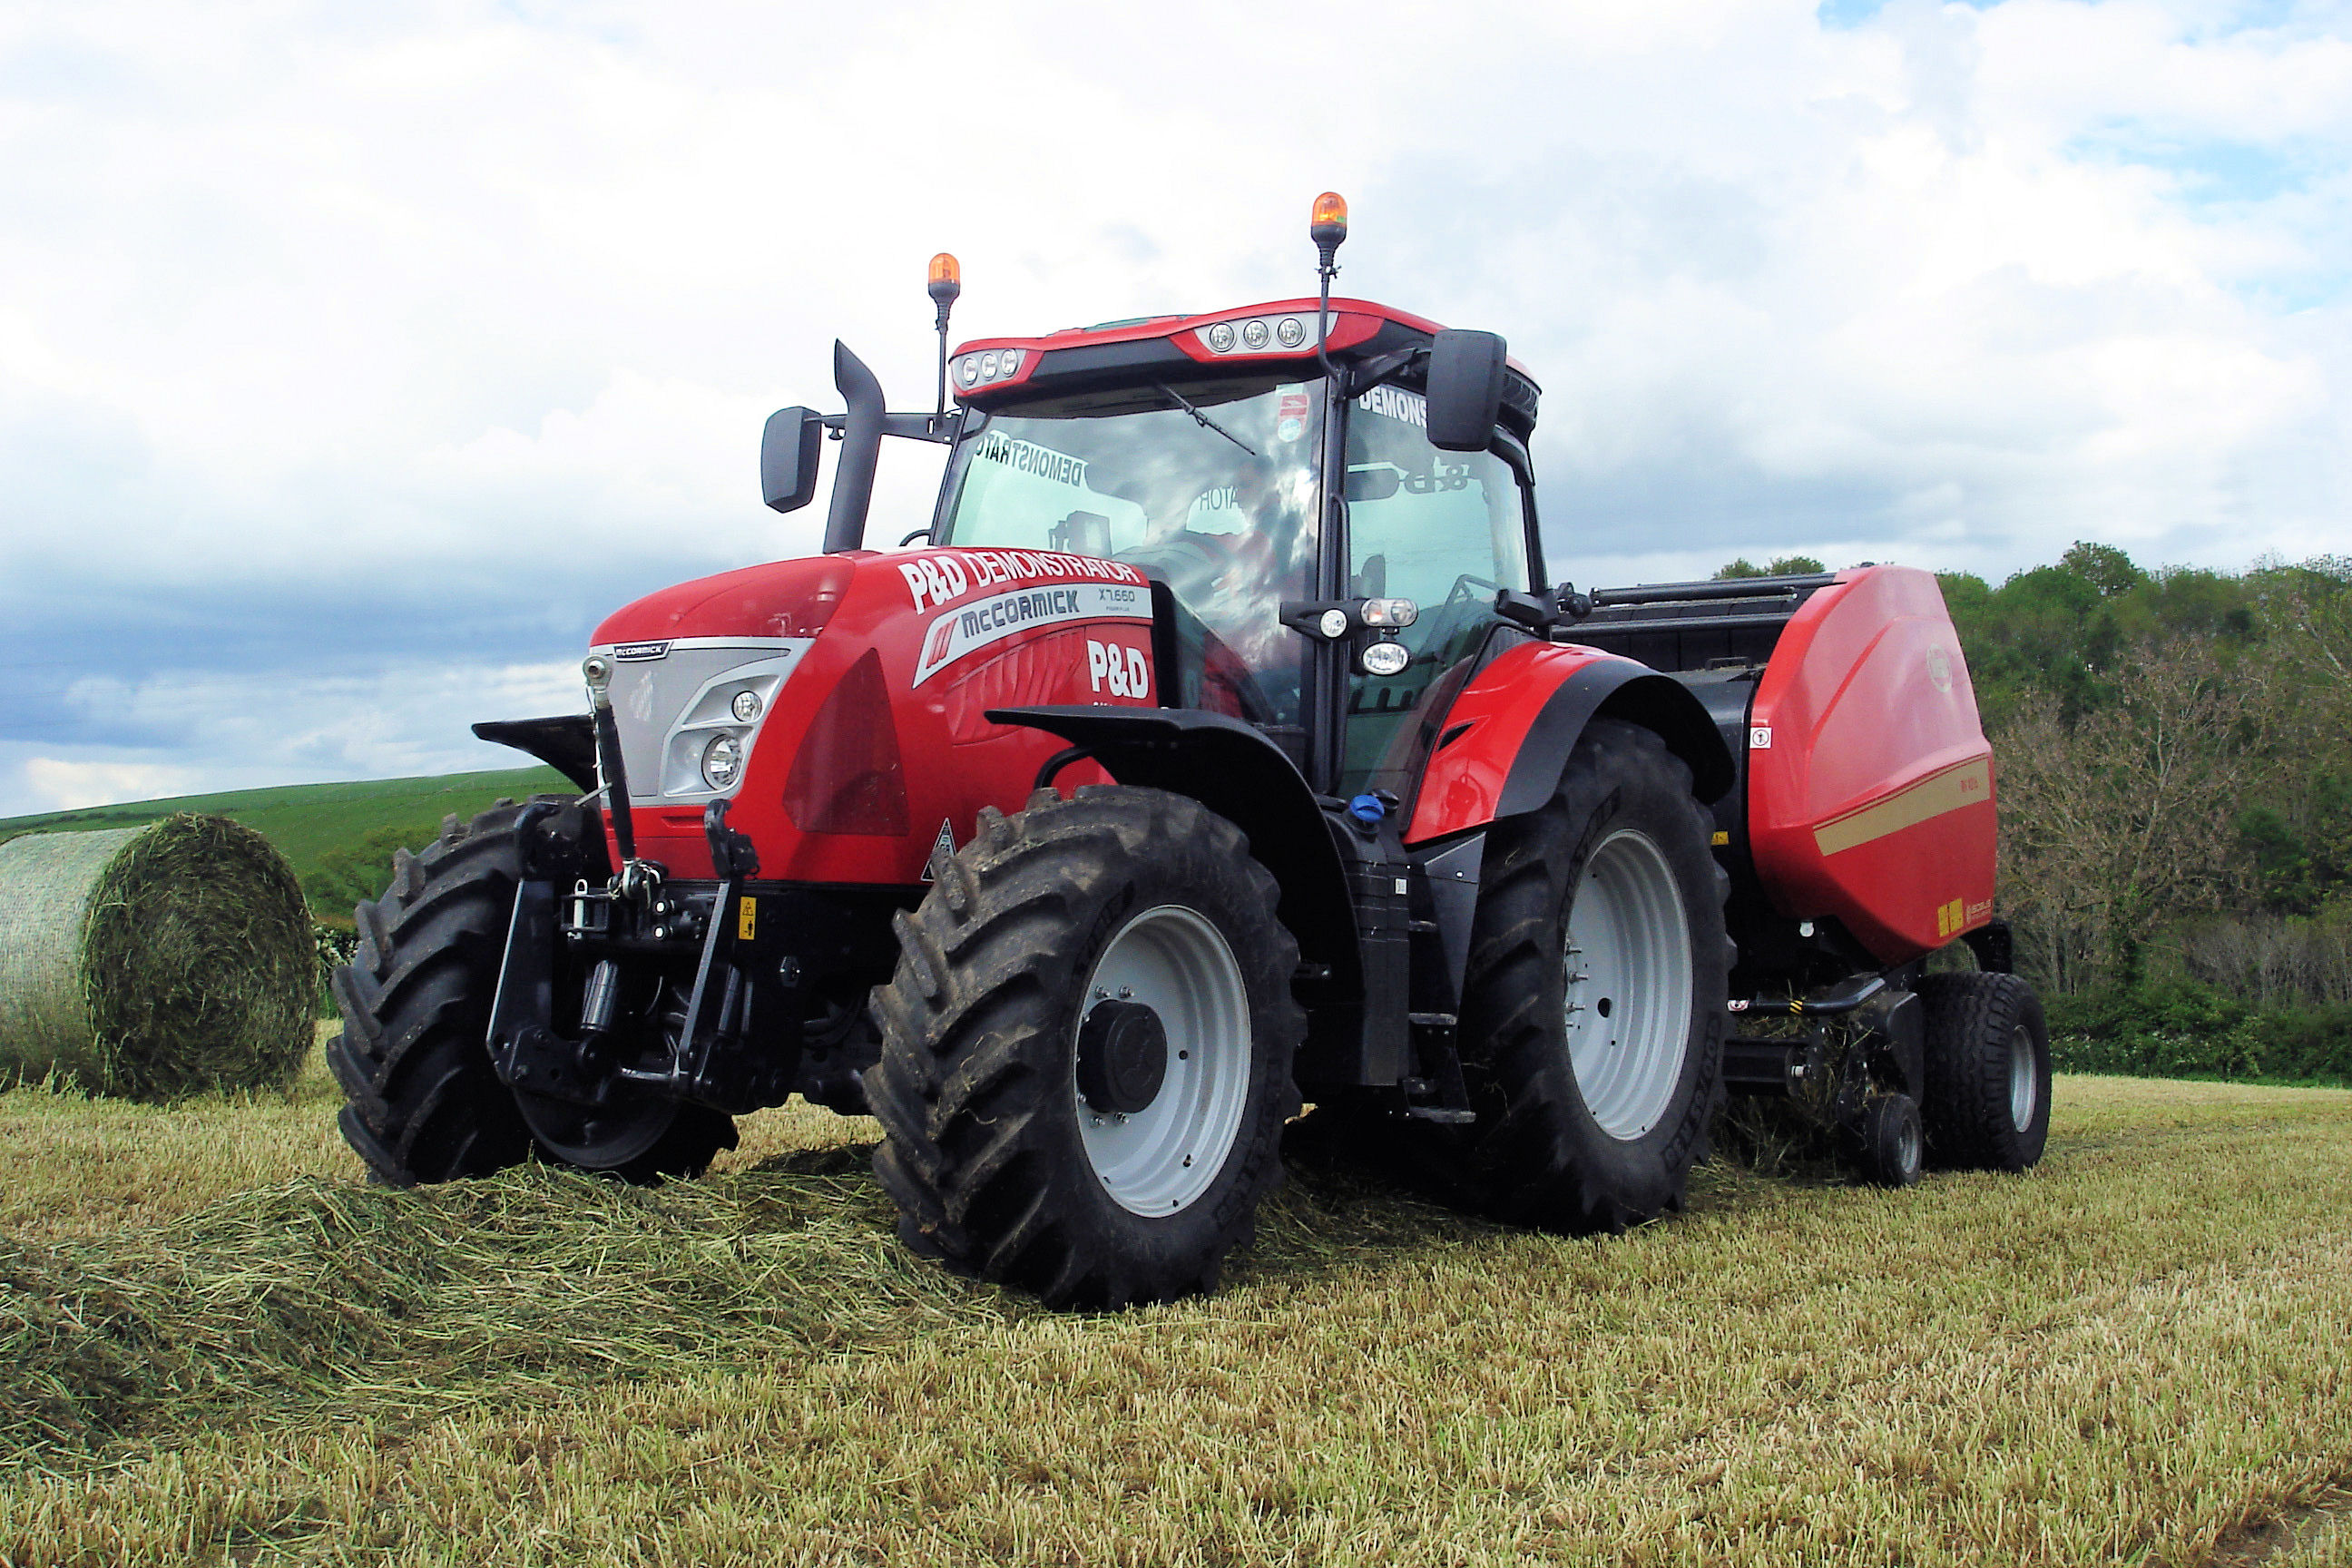 http://www.grasslandevent.co.uk/content/uploads/2014/05/McCormick-X7.660-Vicon-RV-4216-Baler-Pic-7a.jpg